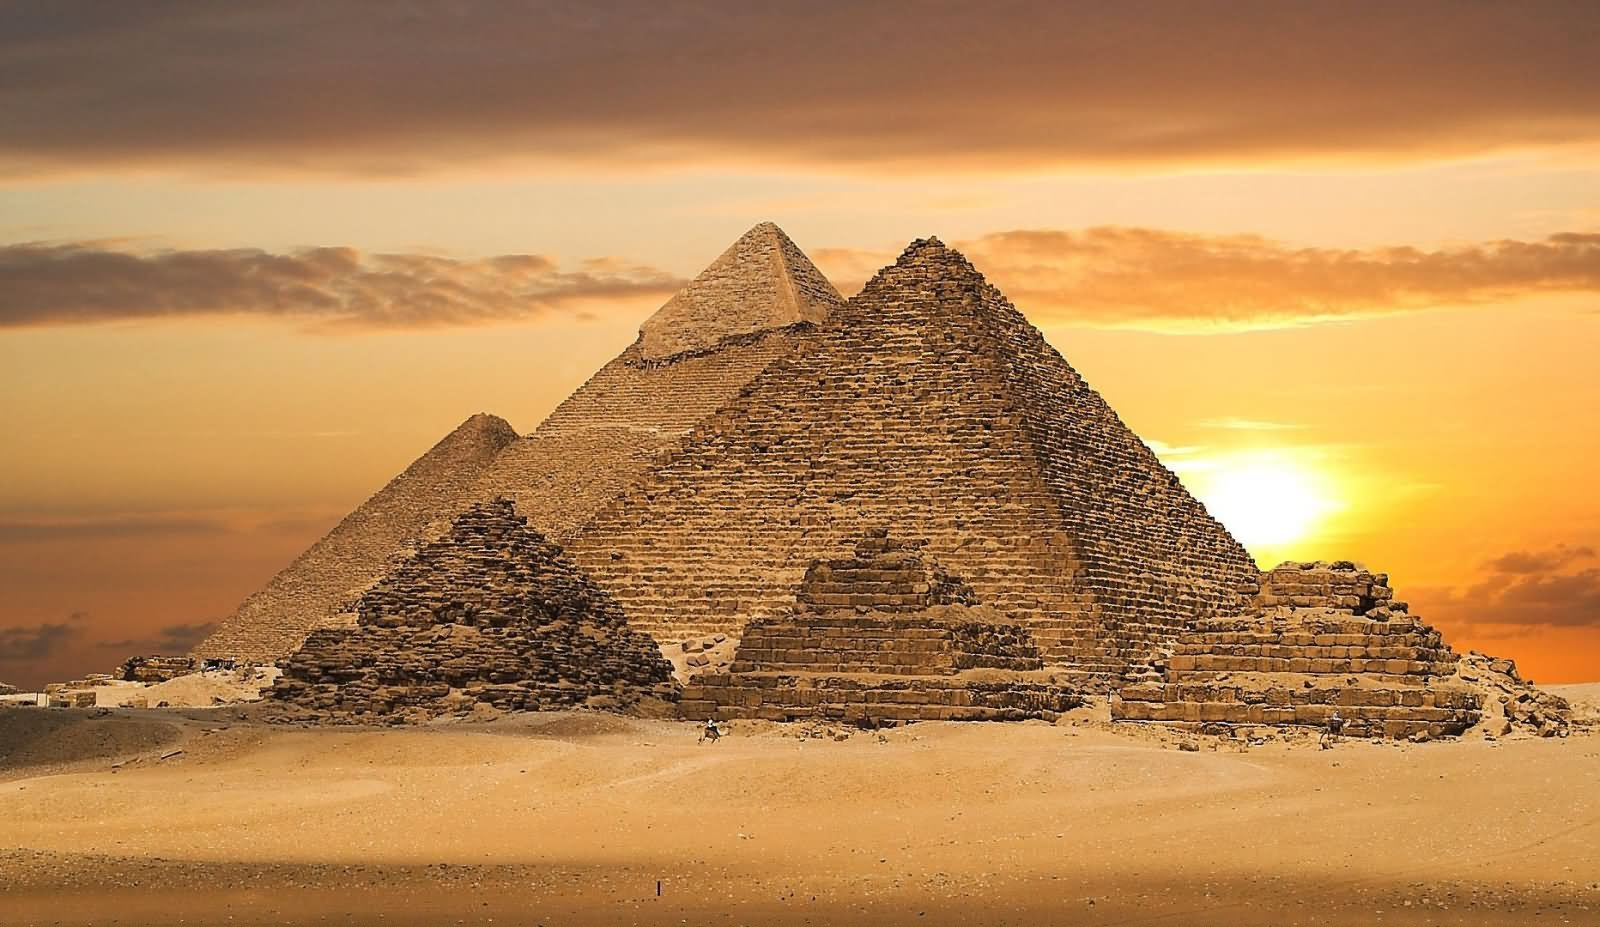 Sunset Image Of The Egyptian Pyramids